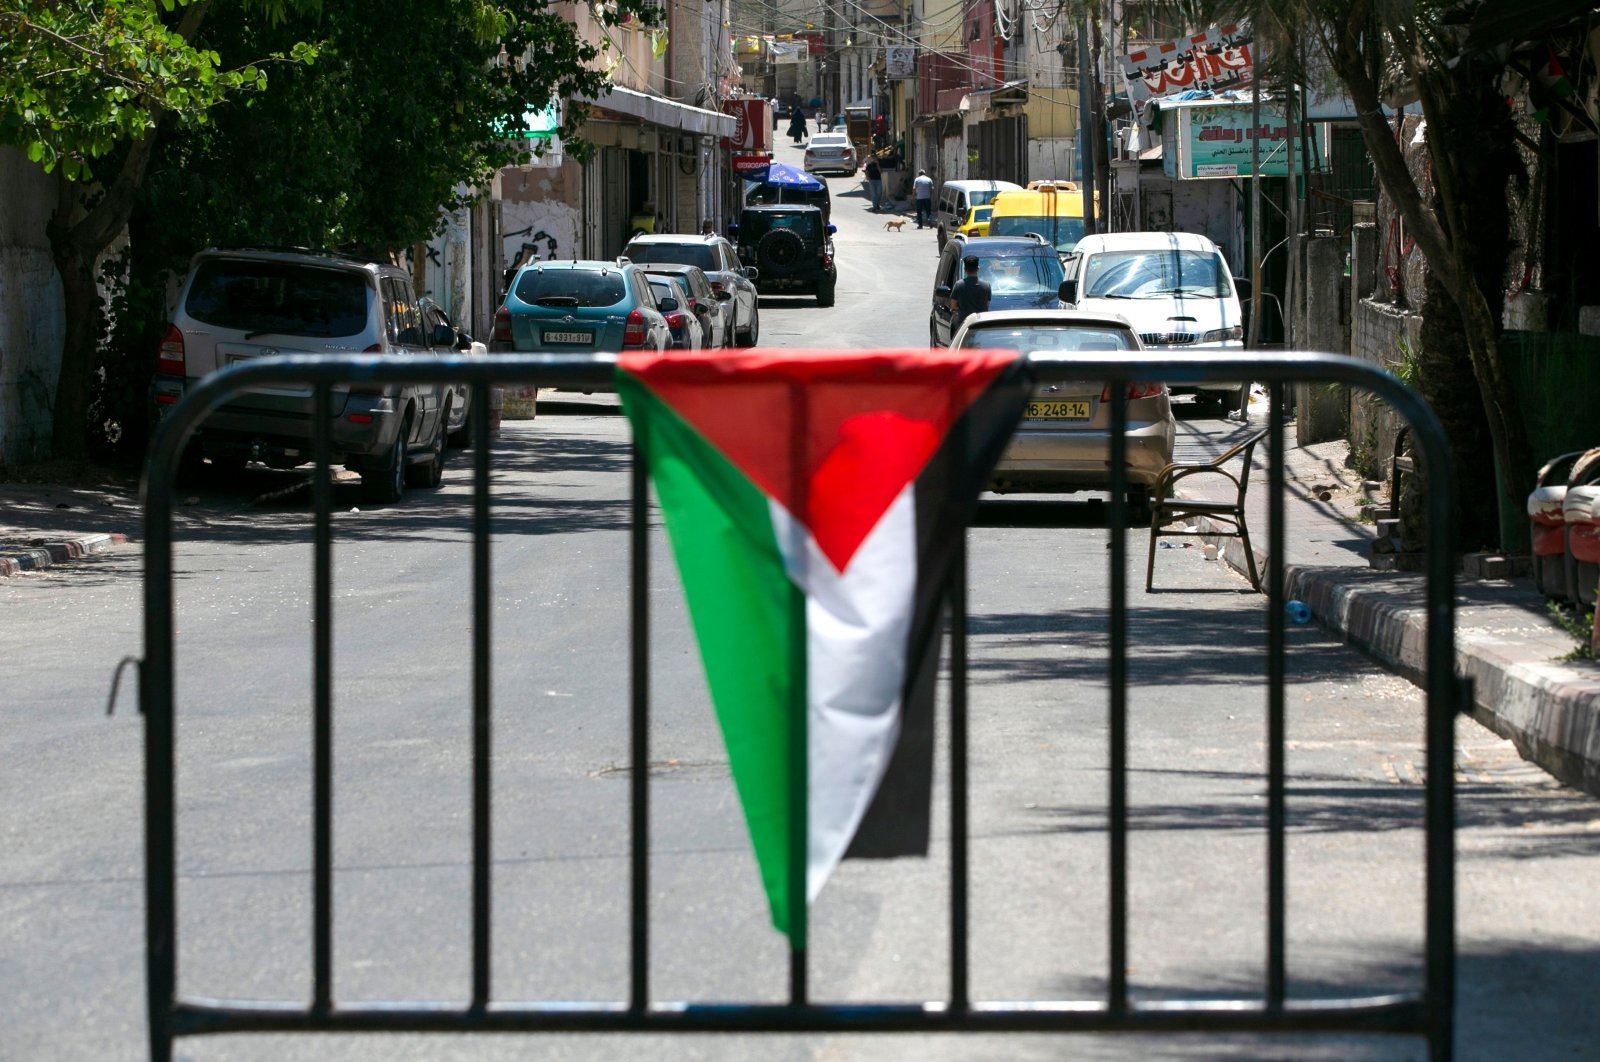 A Palestinian flag is draped over a metal barrier at a checkpoint at the entrance of Amari refugee camp near Ramallah, occupied West Bank, July 24, 2020. (AFP Photo)